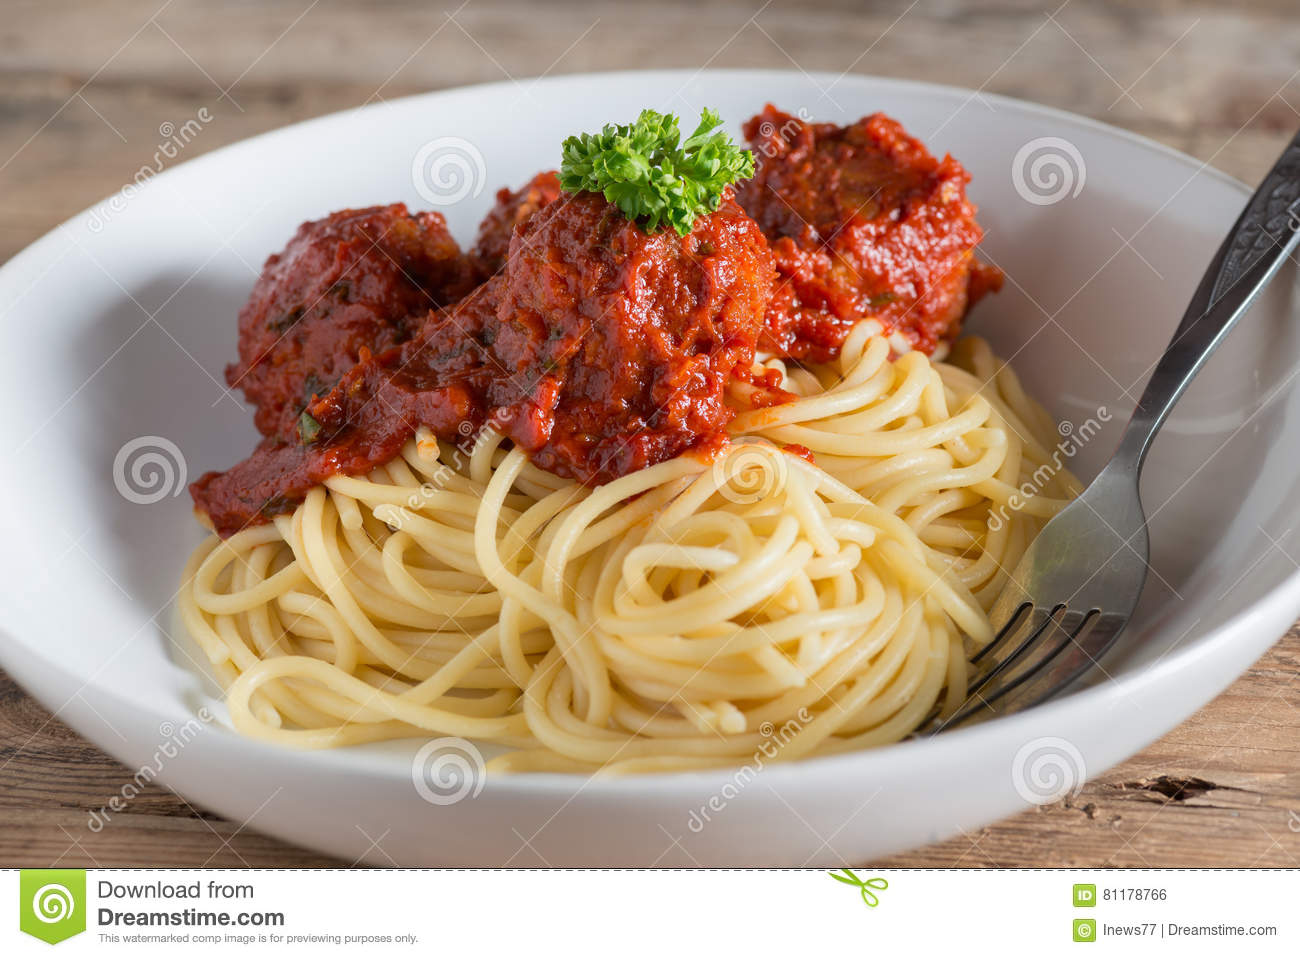 Spaghetti and Meatballs in white plate.